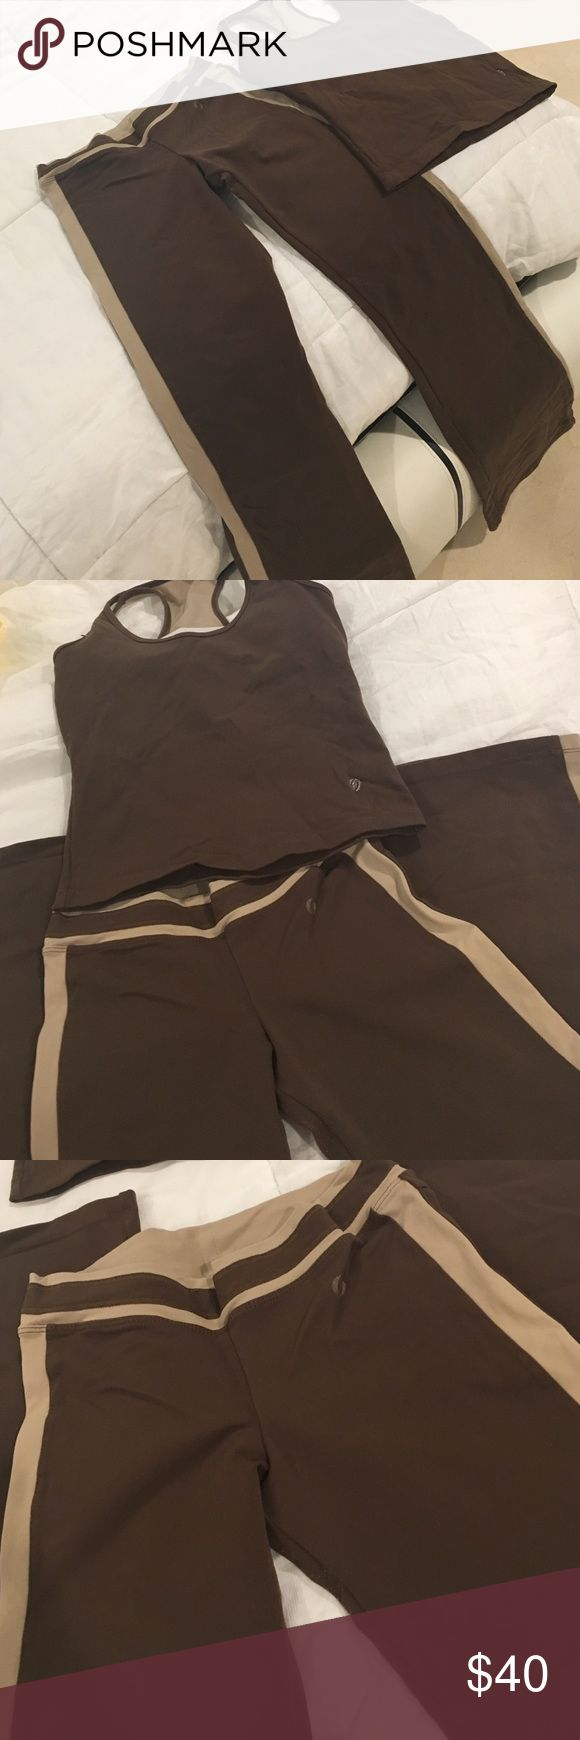 Brown Sparta workout outfit Dark brown gym outfit, size small worn few times, flare pants no leggings Pants Leggings